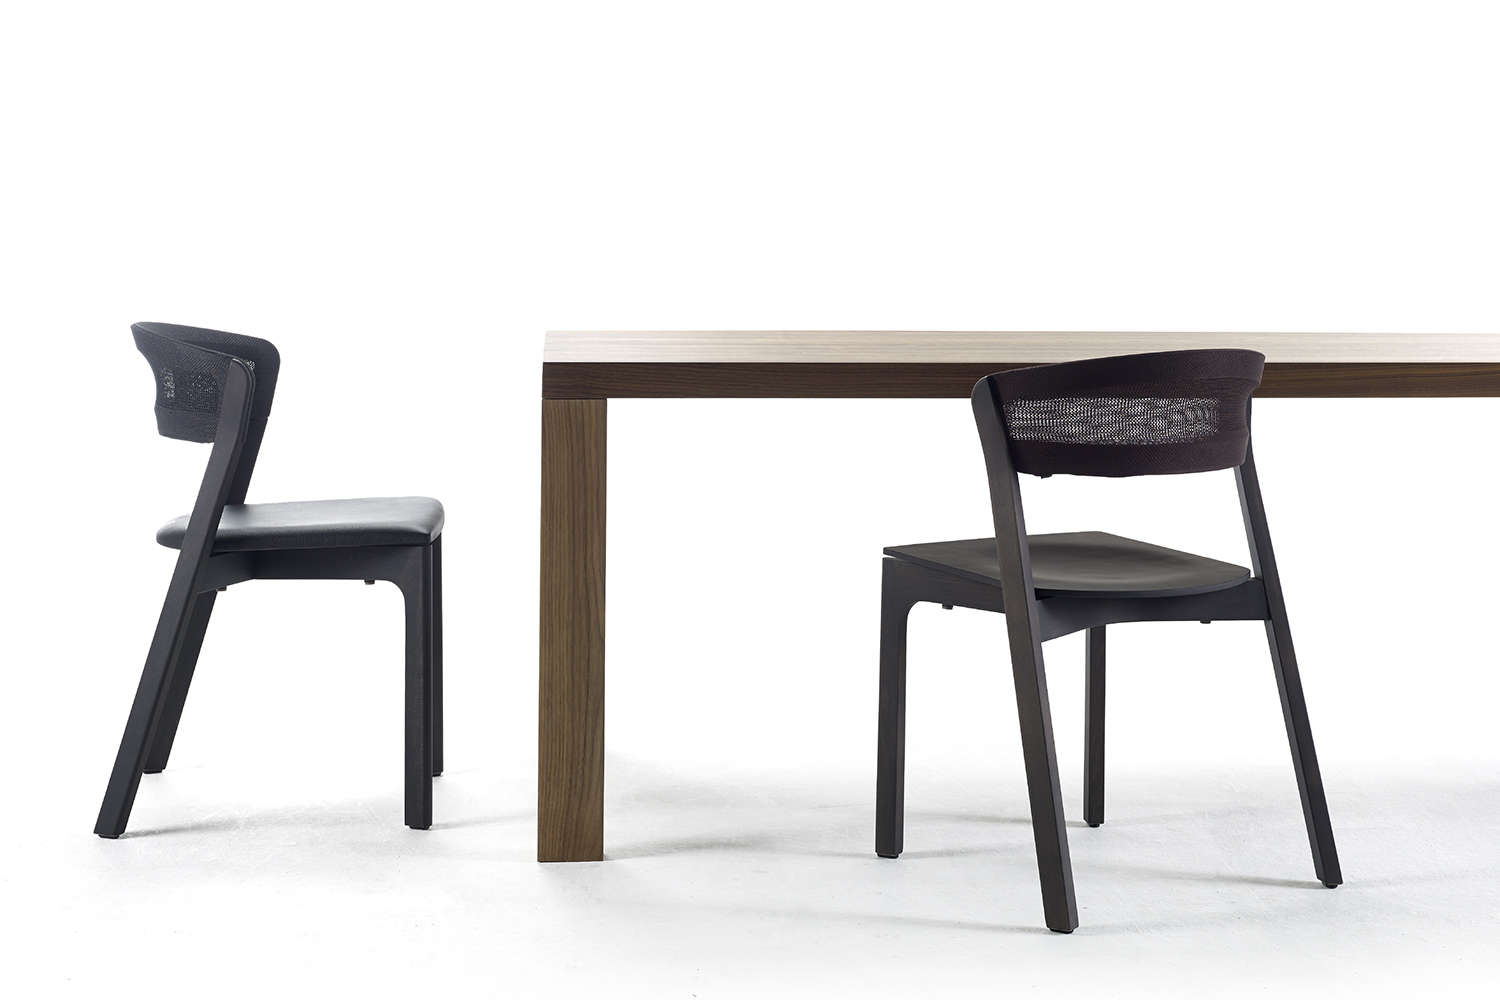 Arco cafe Chair - AD RESIZED - 4.jpg